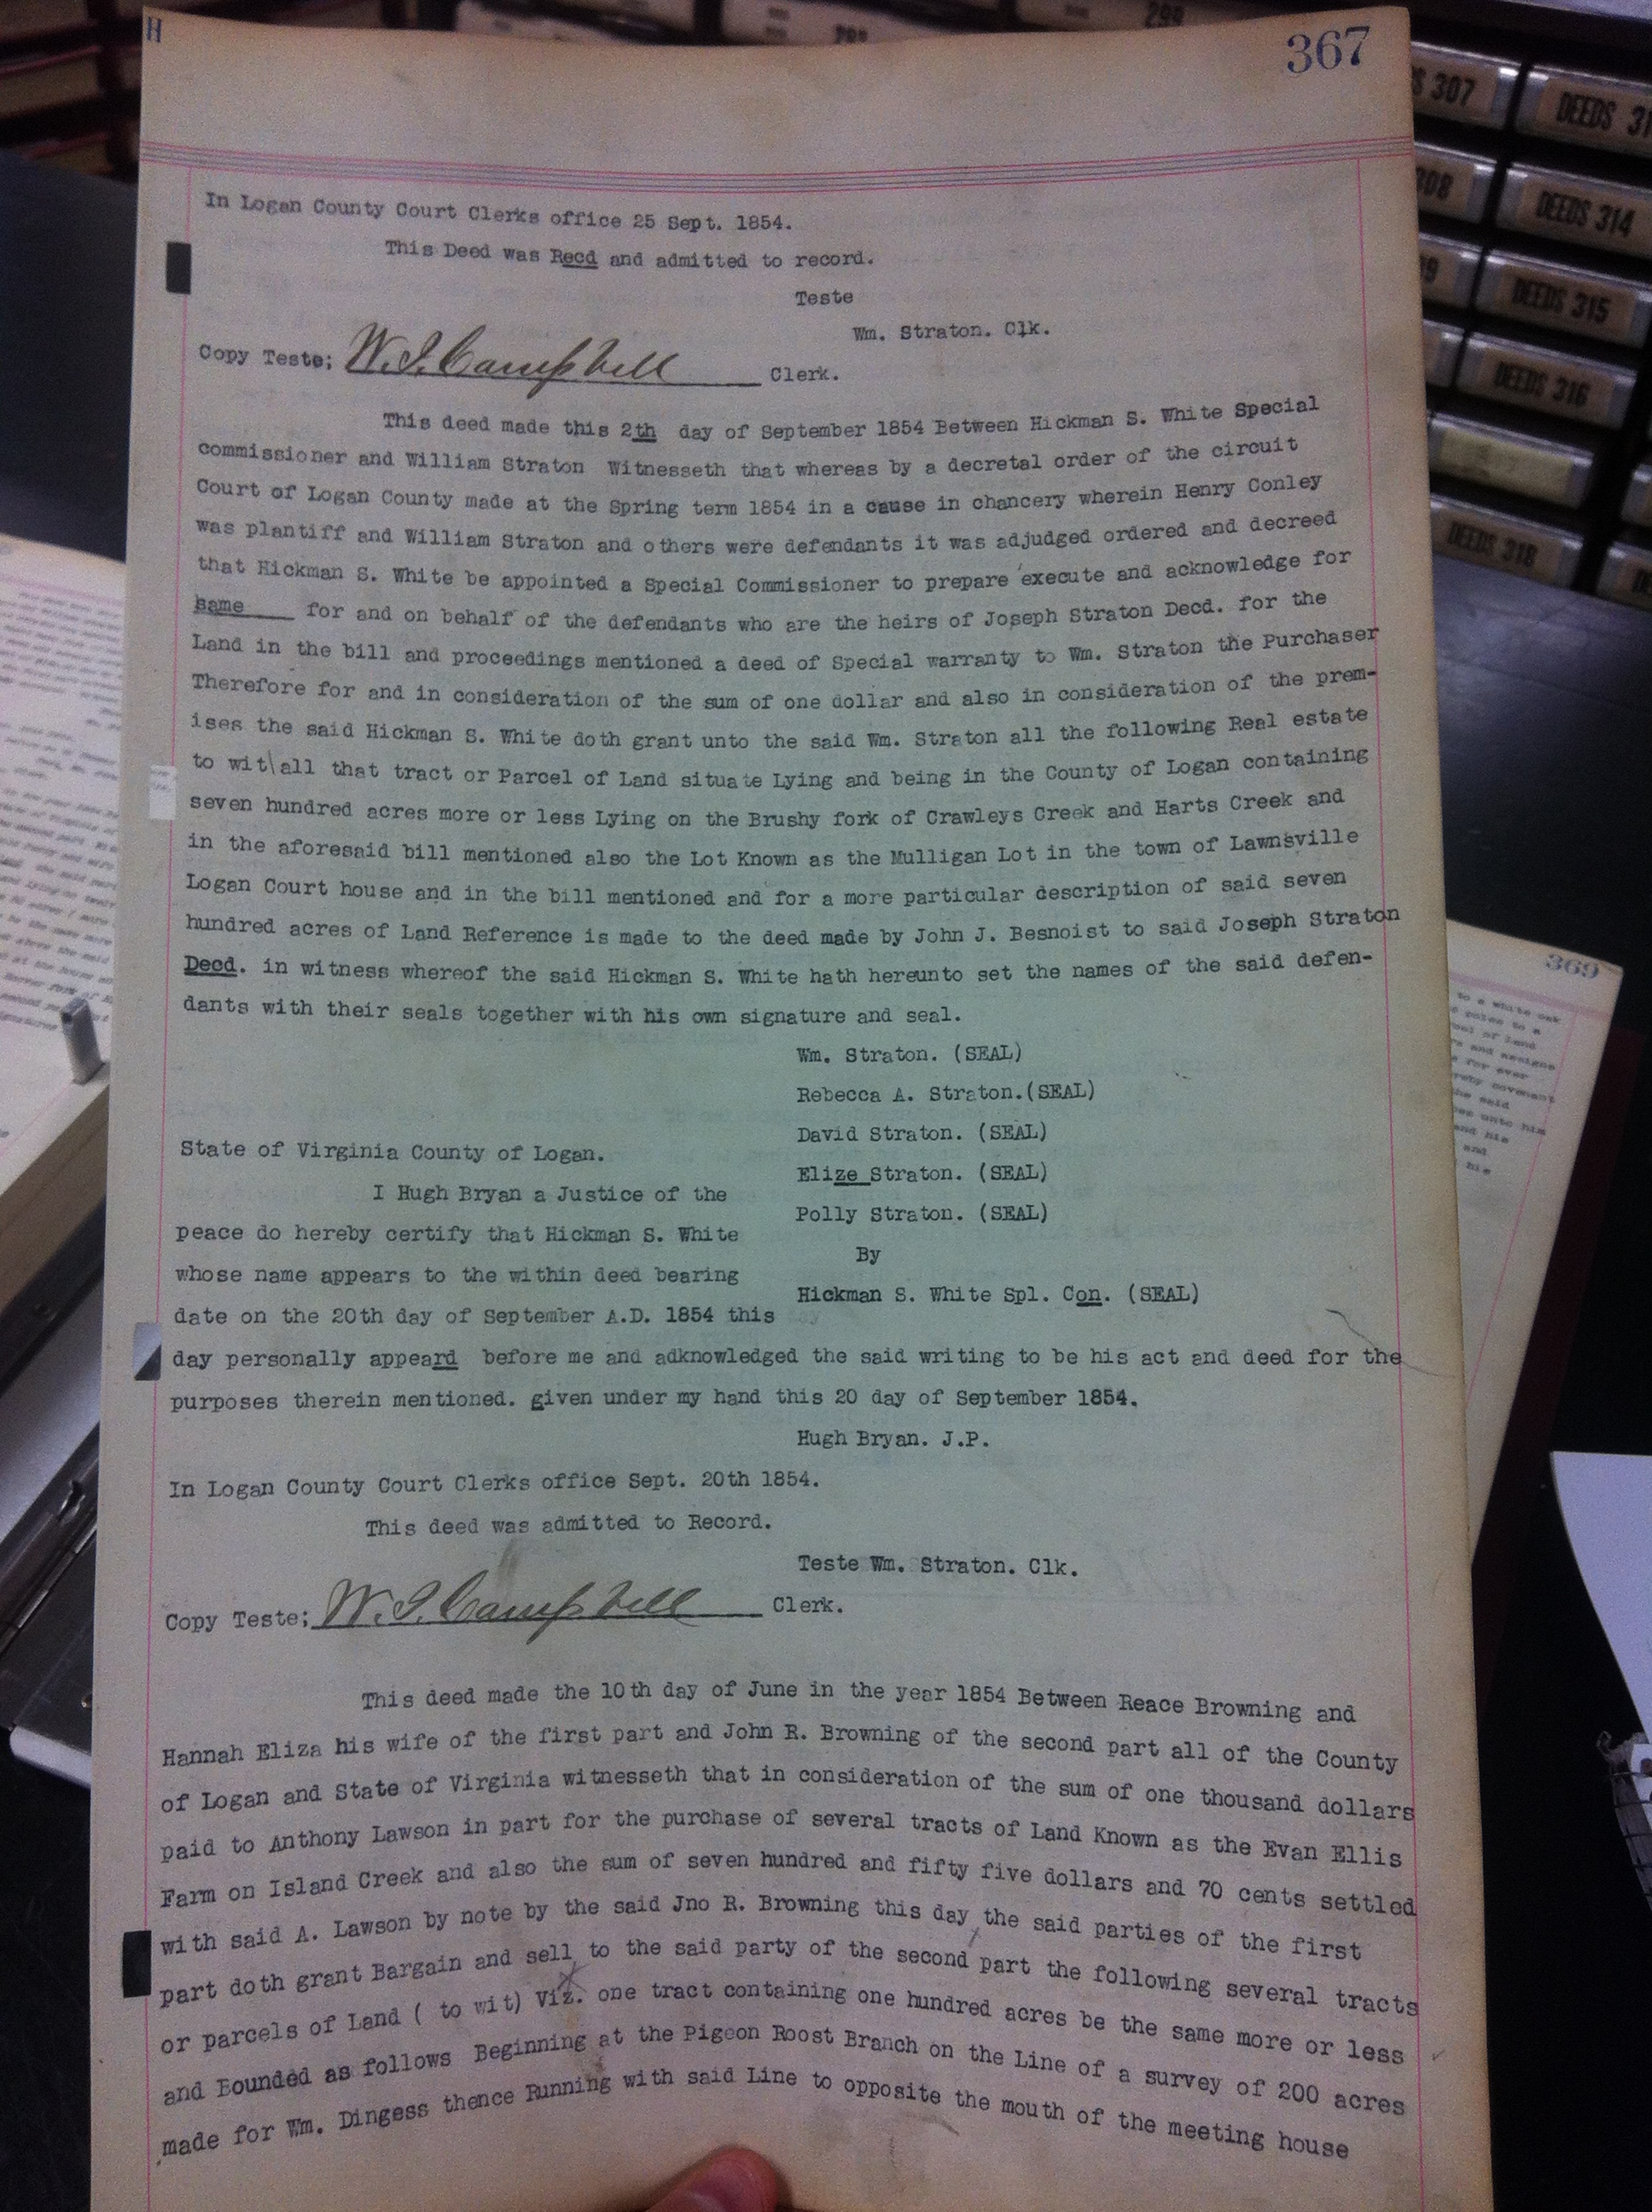 Henry Conley and William Straton Deed 1